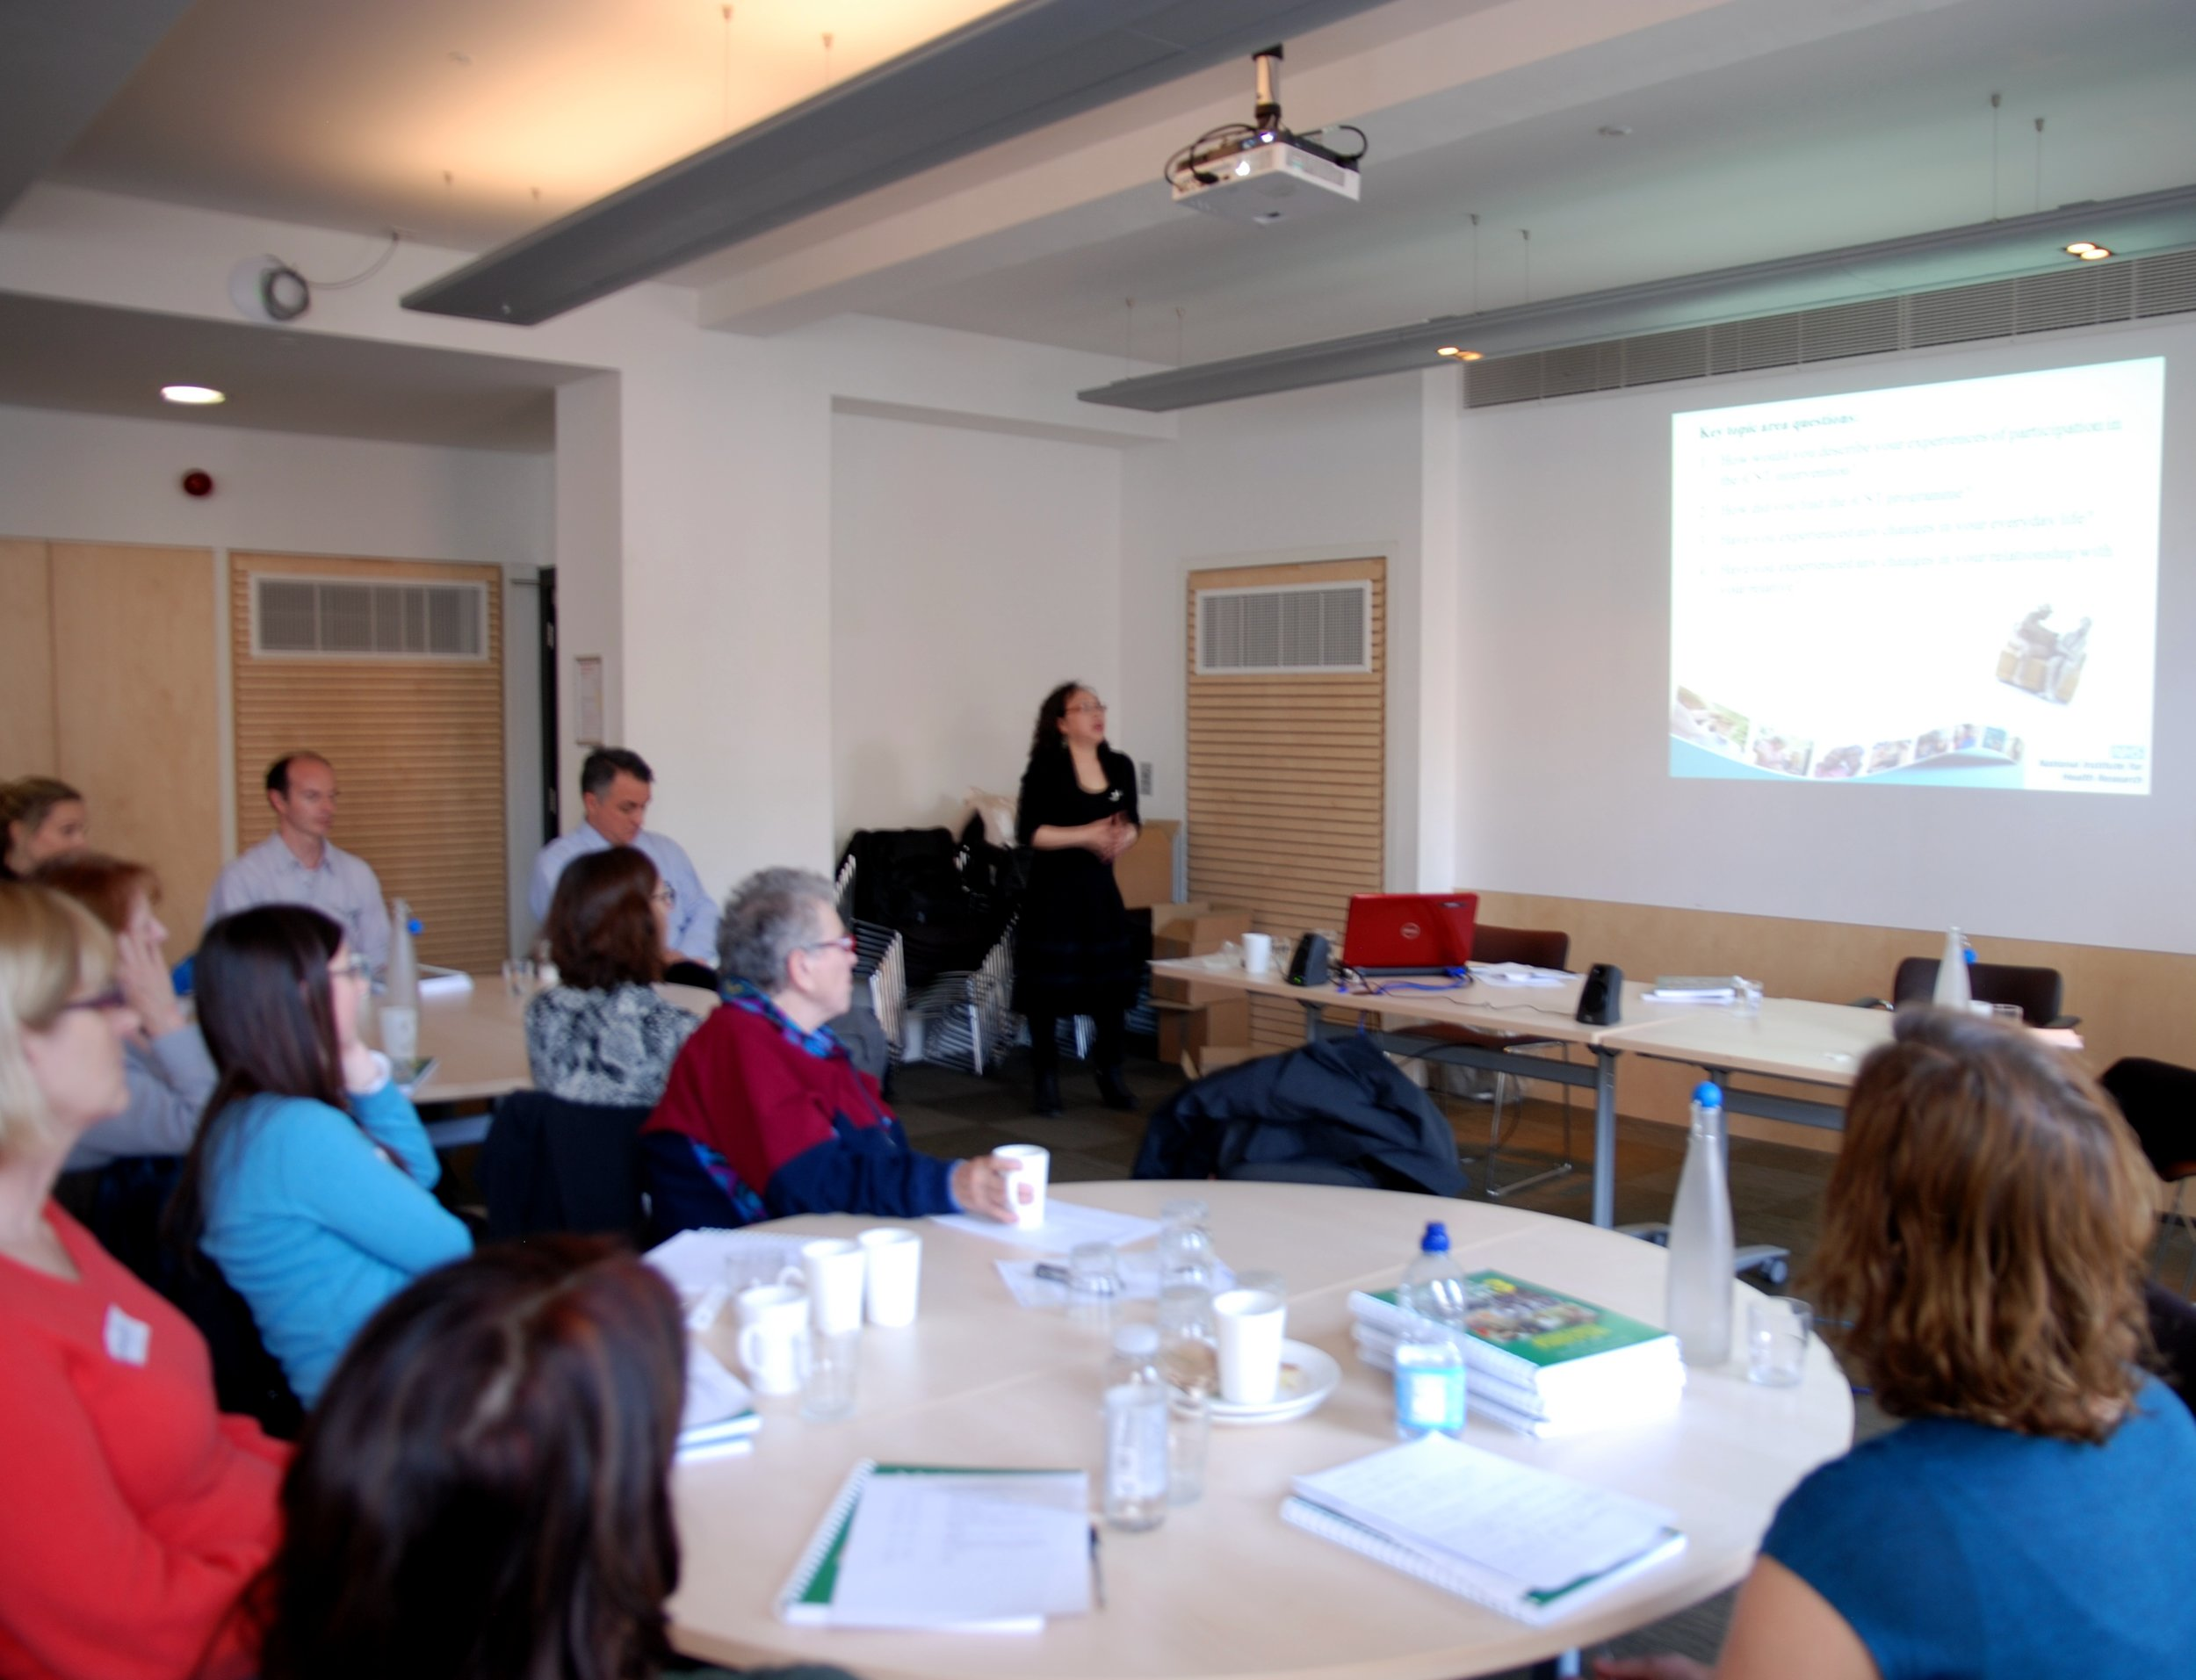 Dr Phuong Leung disseminated iCST research findings to the iCST research team at University College London